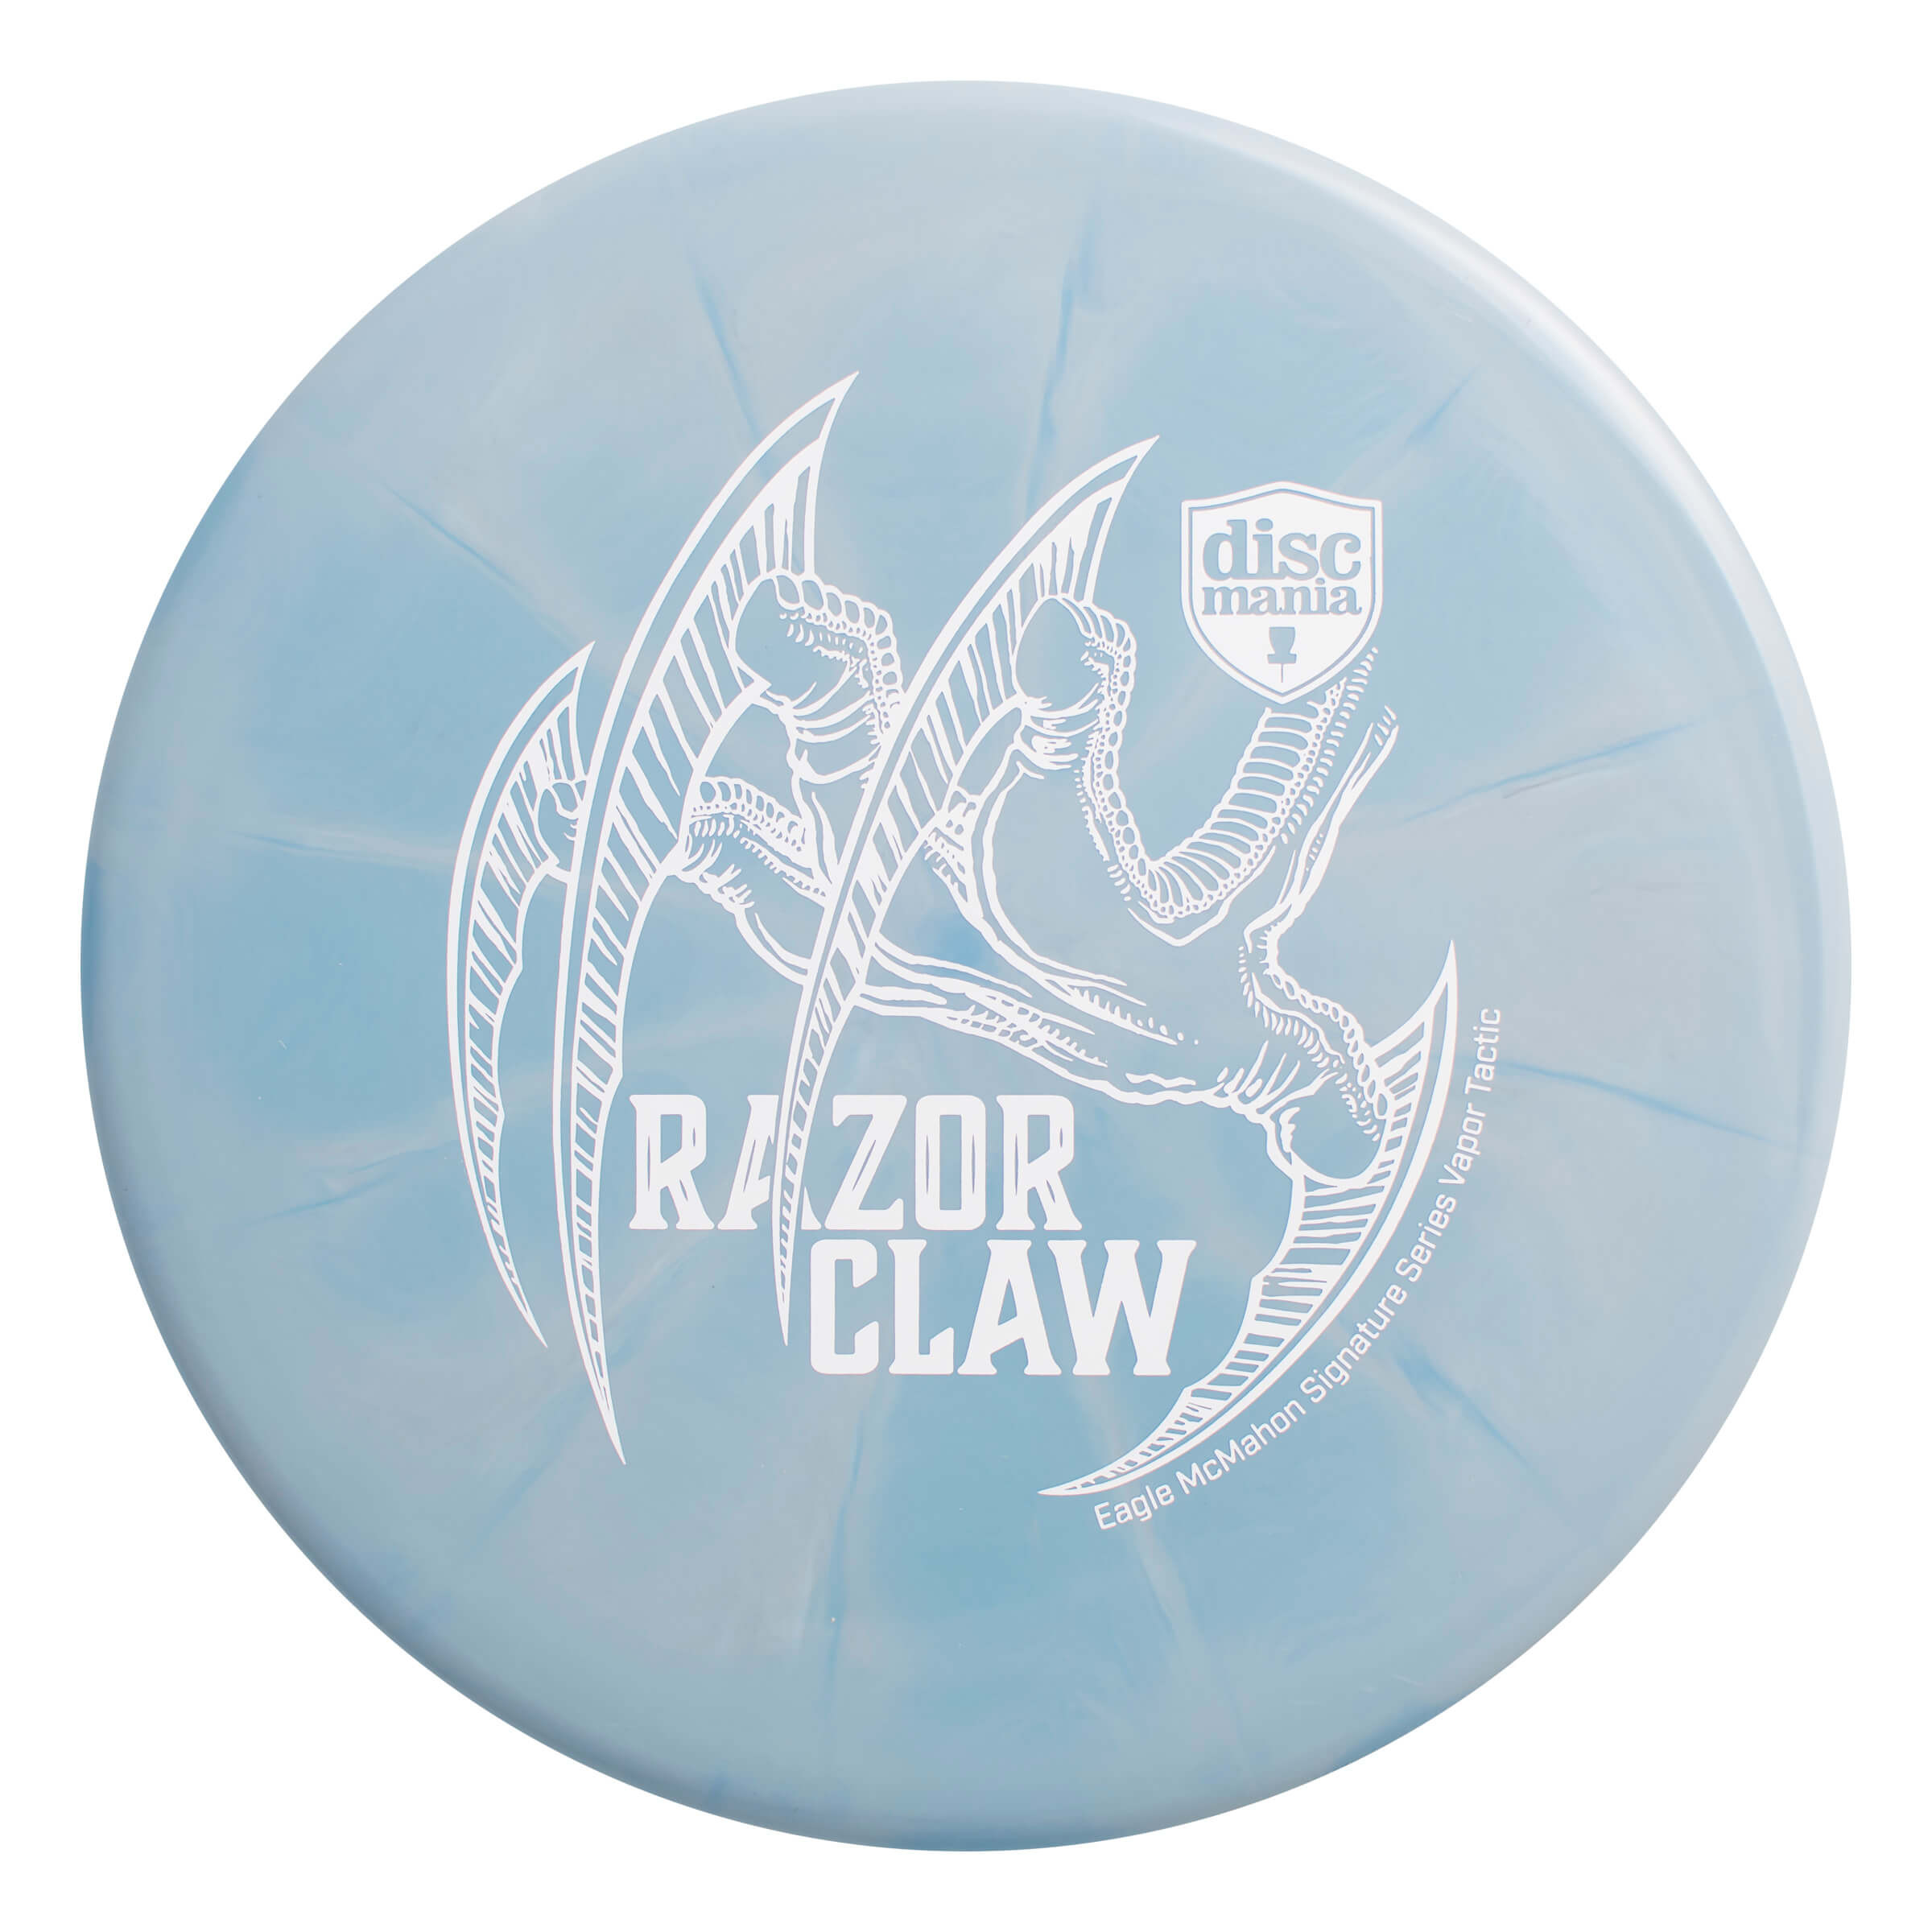 Discmania Evolution Vapor Tactic Eagle McMahon Signature Series Razor Claw